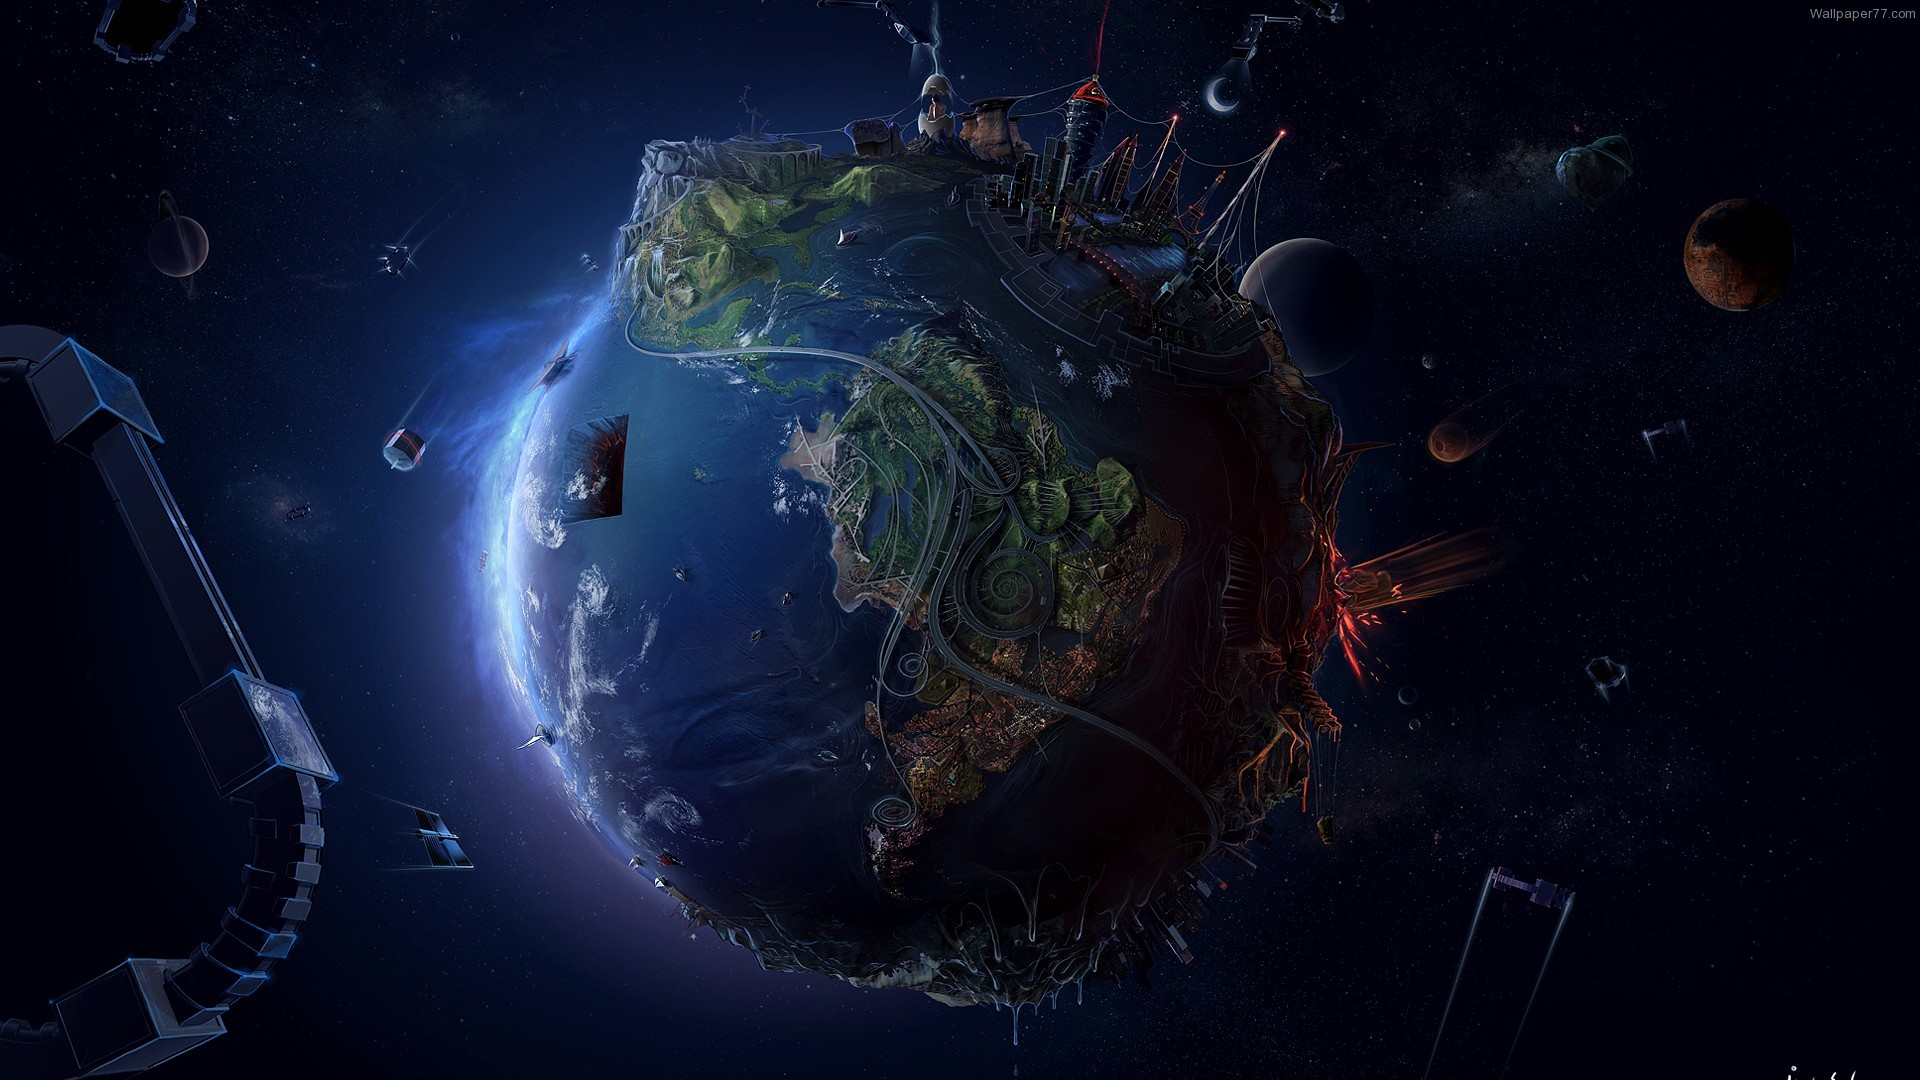 black-earth-orbit-planet-planet-wallpapers-space .